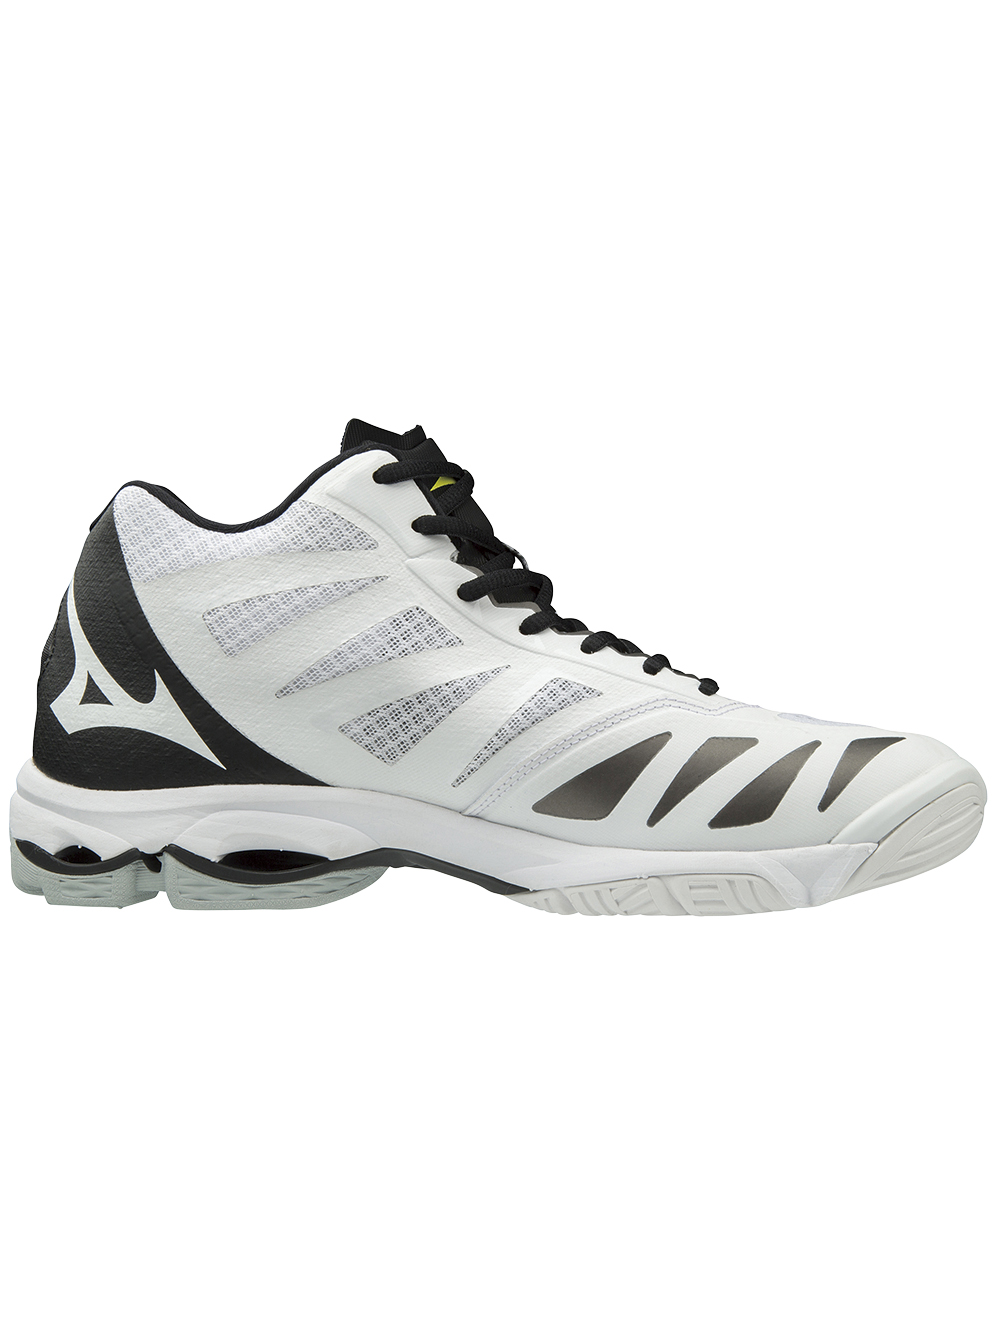 mizuno mid volleyball shoes - 51% OFF